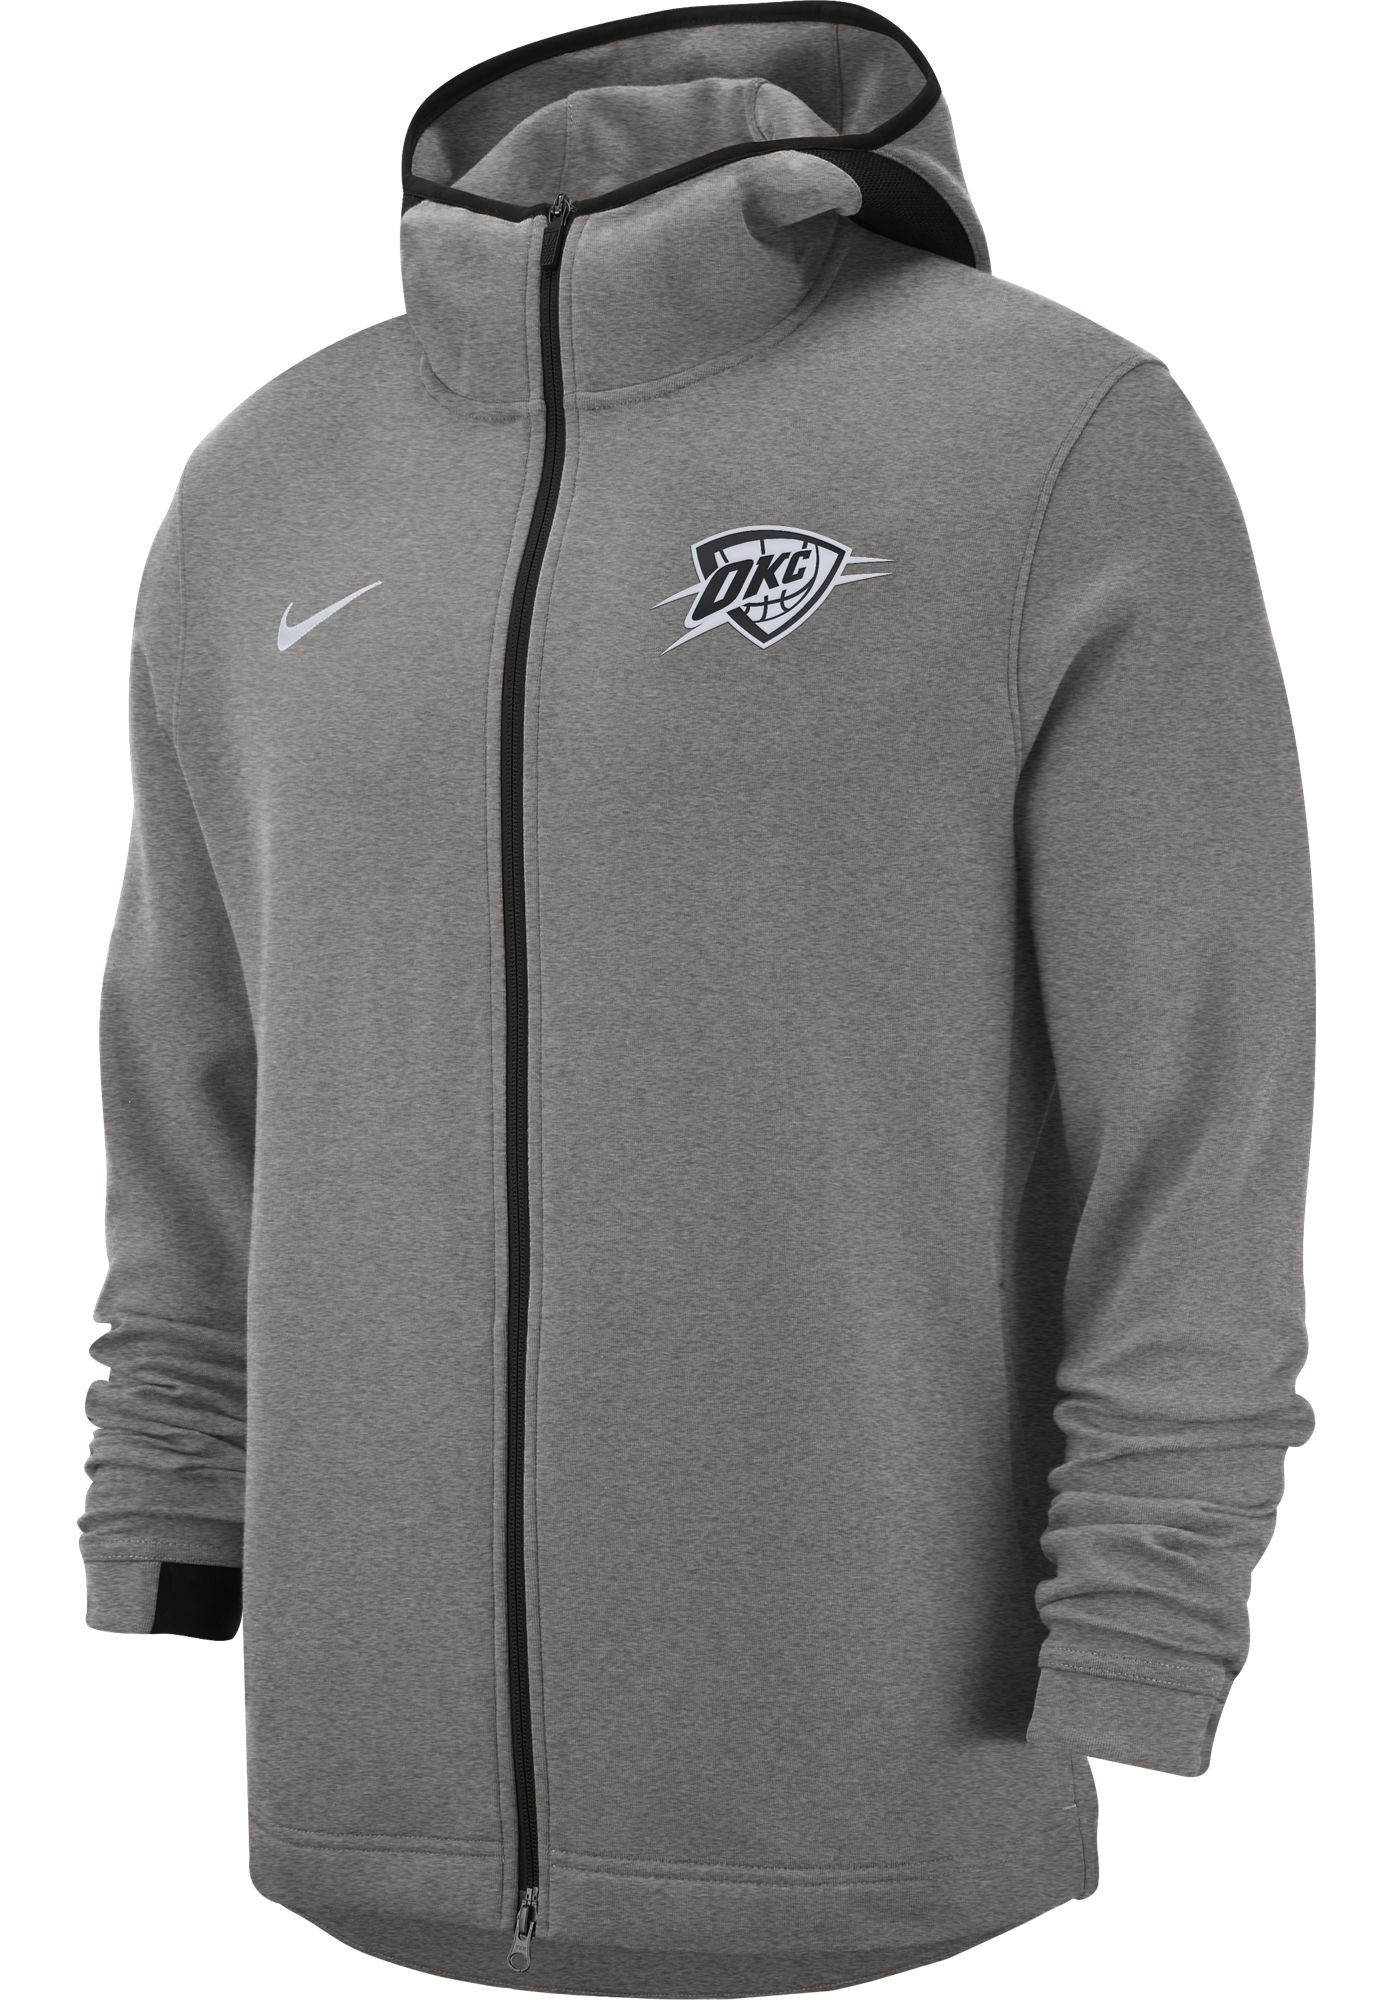 Nike Men's Oklahoma City Thunder On-Court Dri-FIT Showtime Full-Zip Hoodie